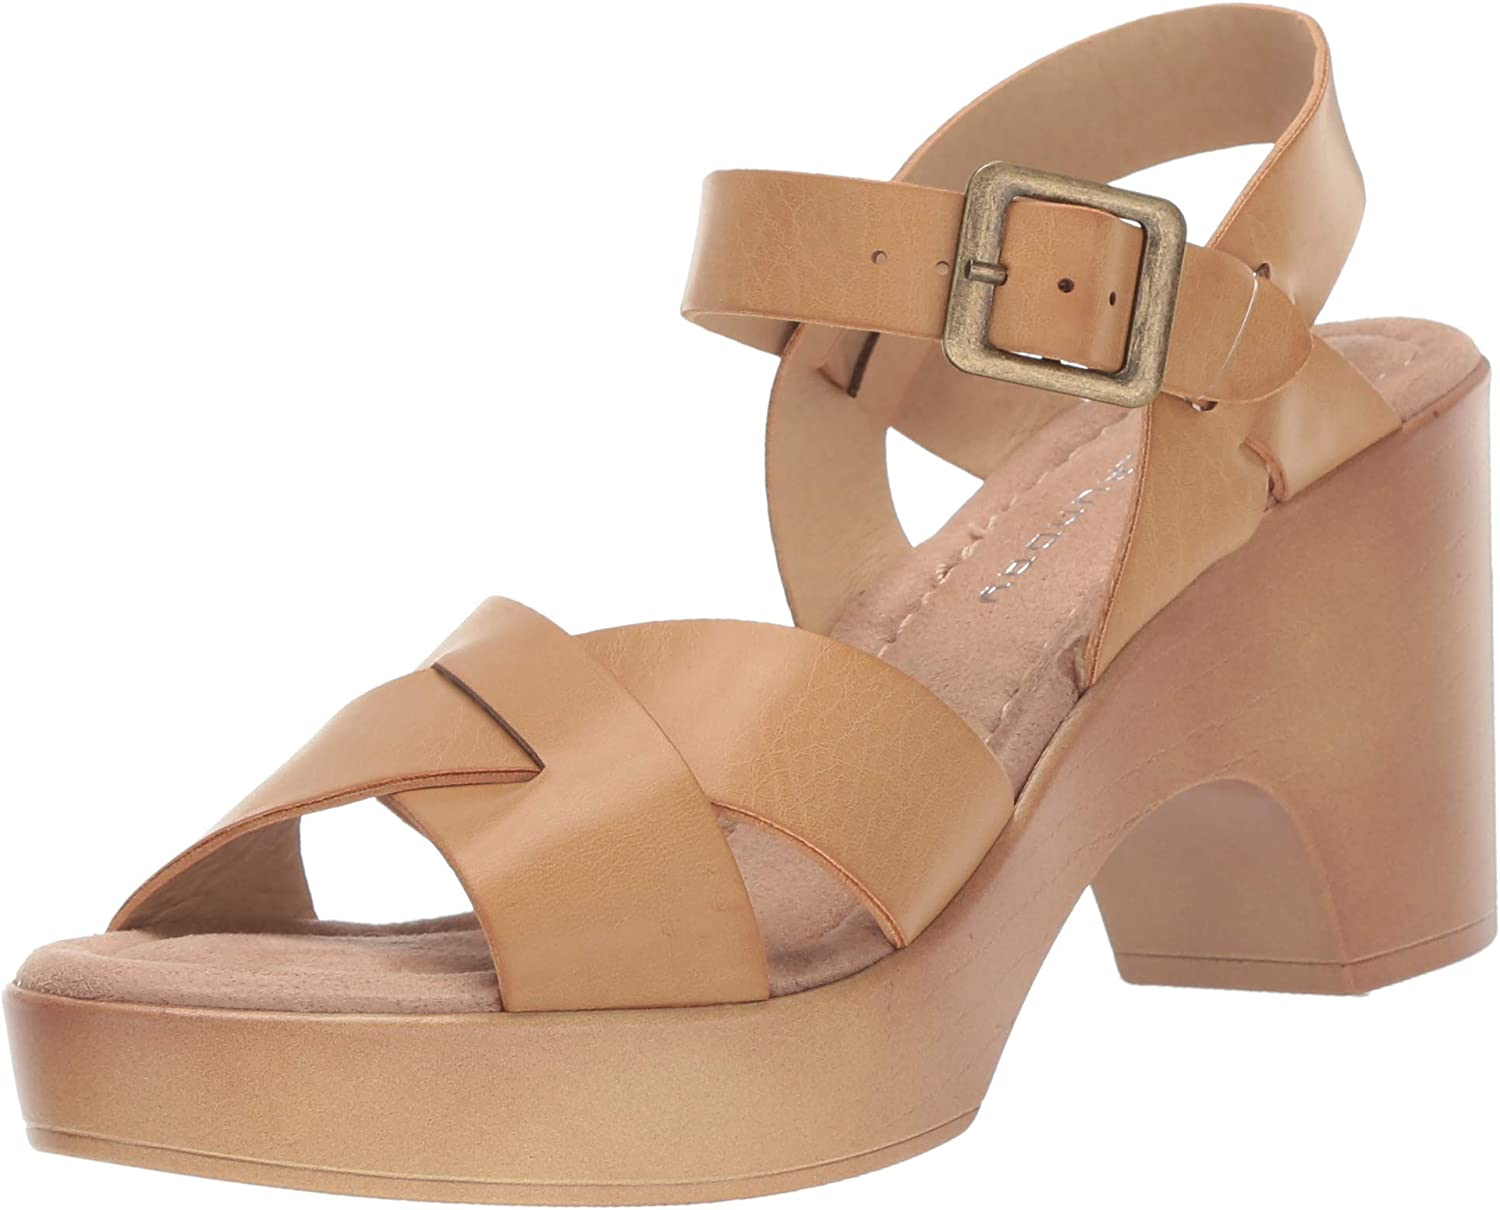 CL by Chinese Laundry Women's Amiya Heeled Sandal